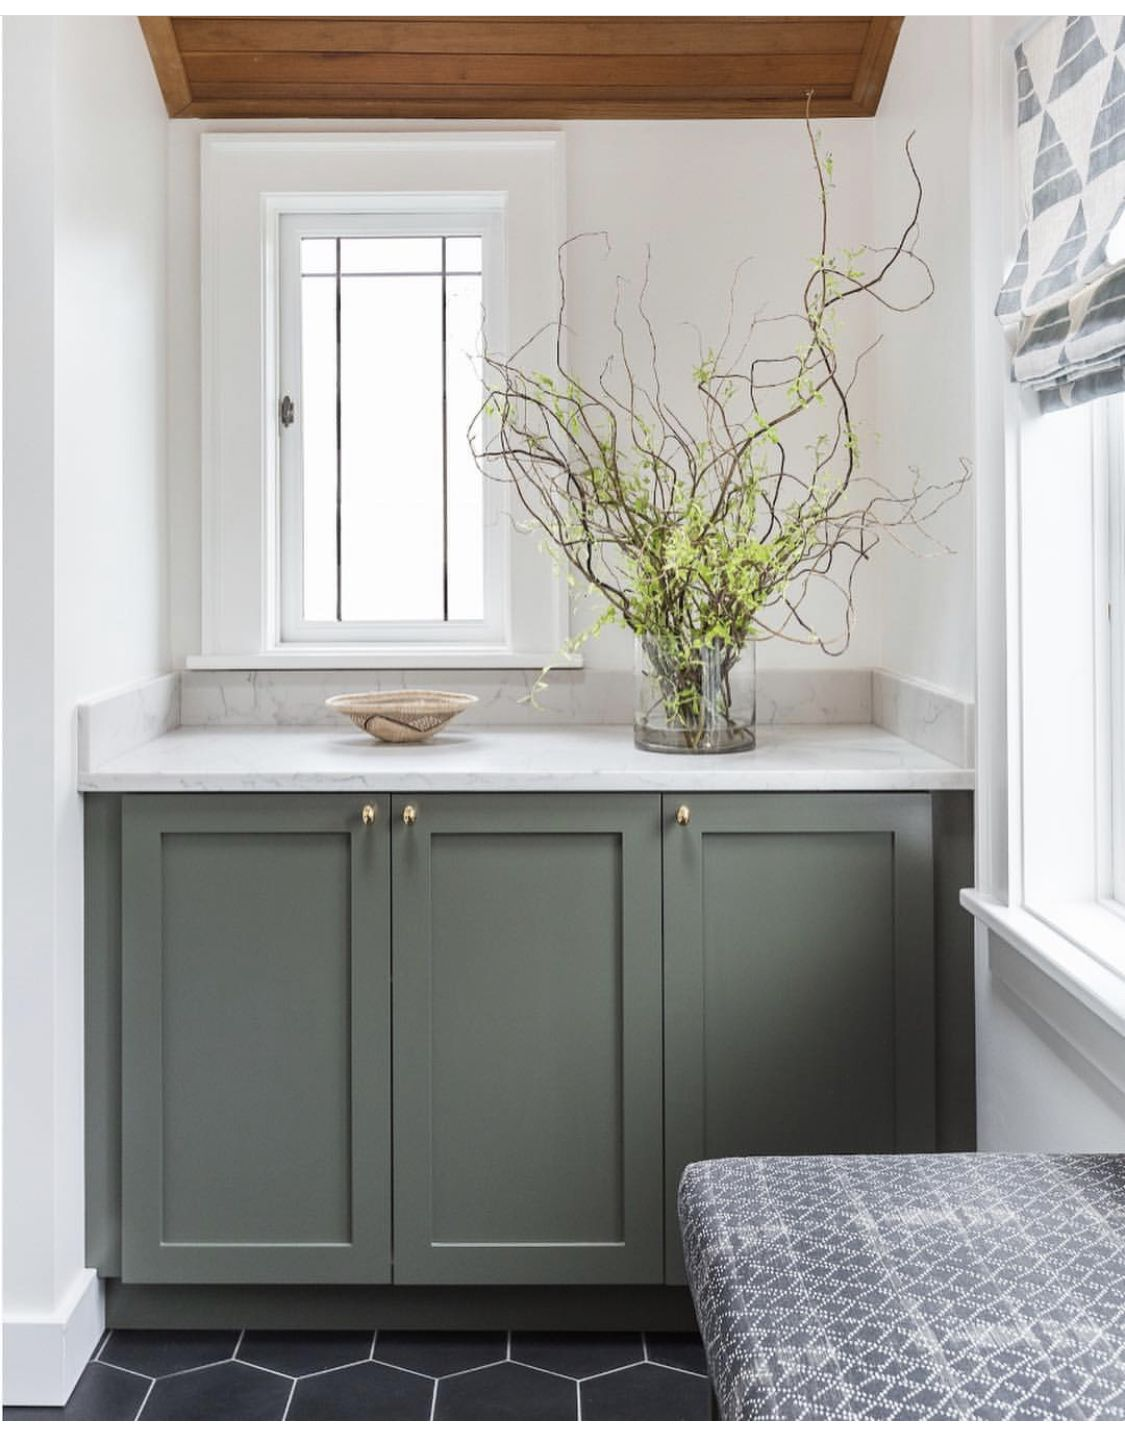 Pin By Limor Pinz On Ideas For The House Green Bathroom Laundry Room Design Green Cabinets